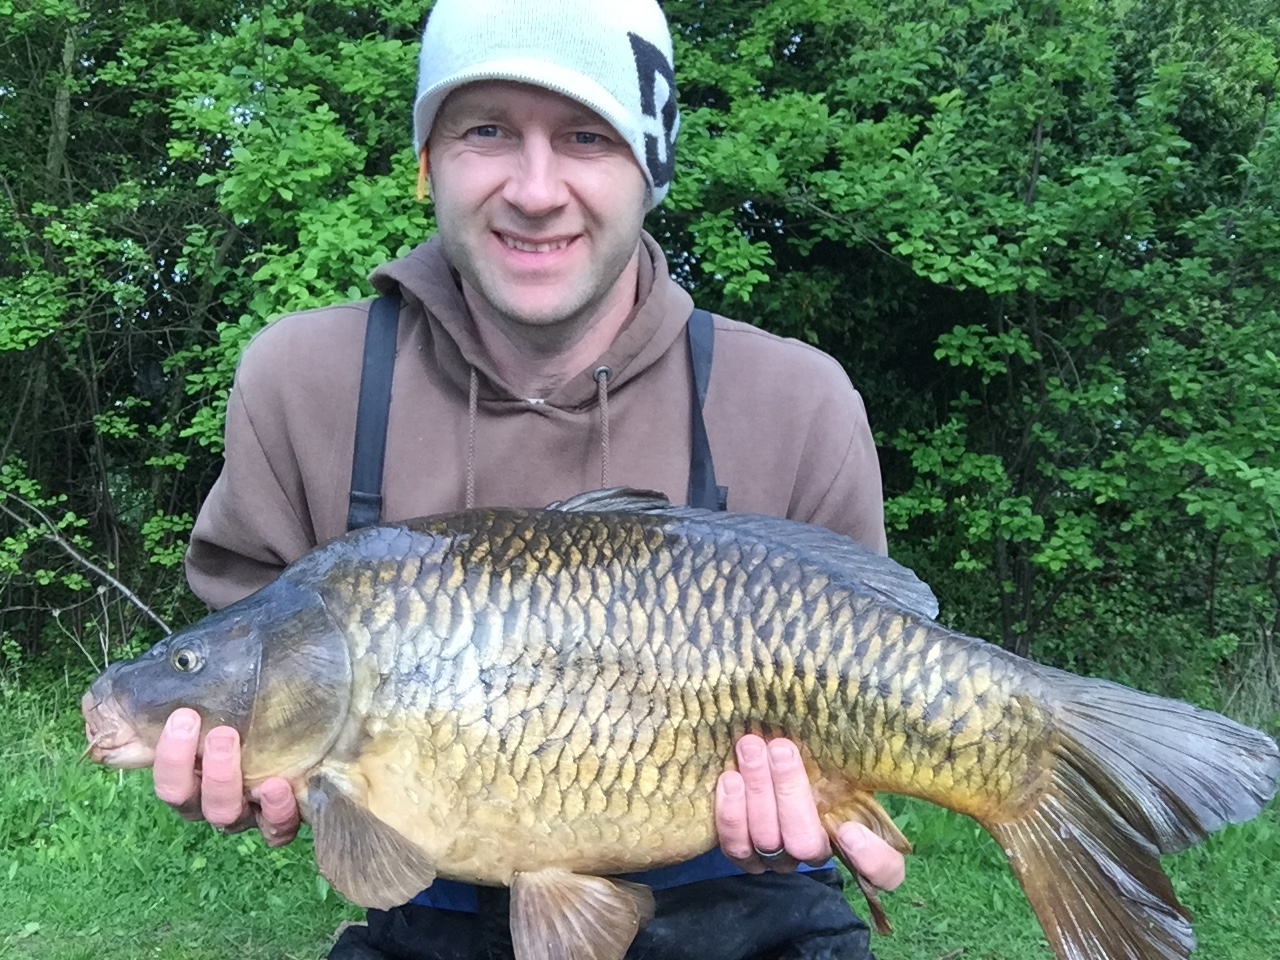 Colin Adams caught this 23lb Common Carp at Barnwell on Sunday Morning (10th May 2015)